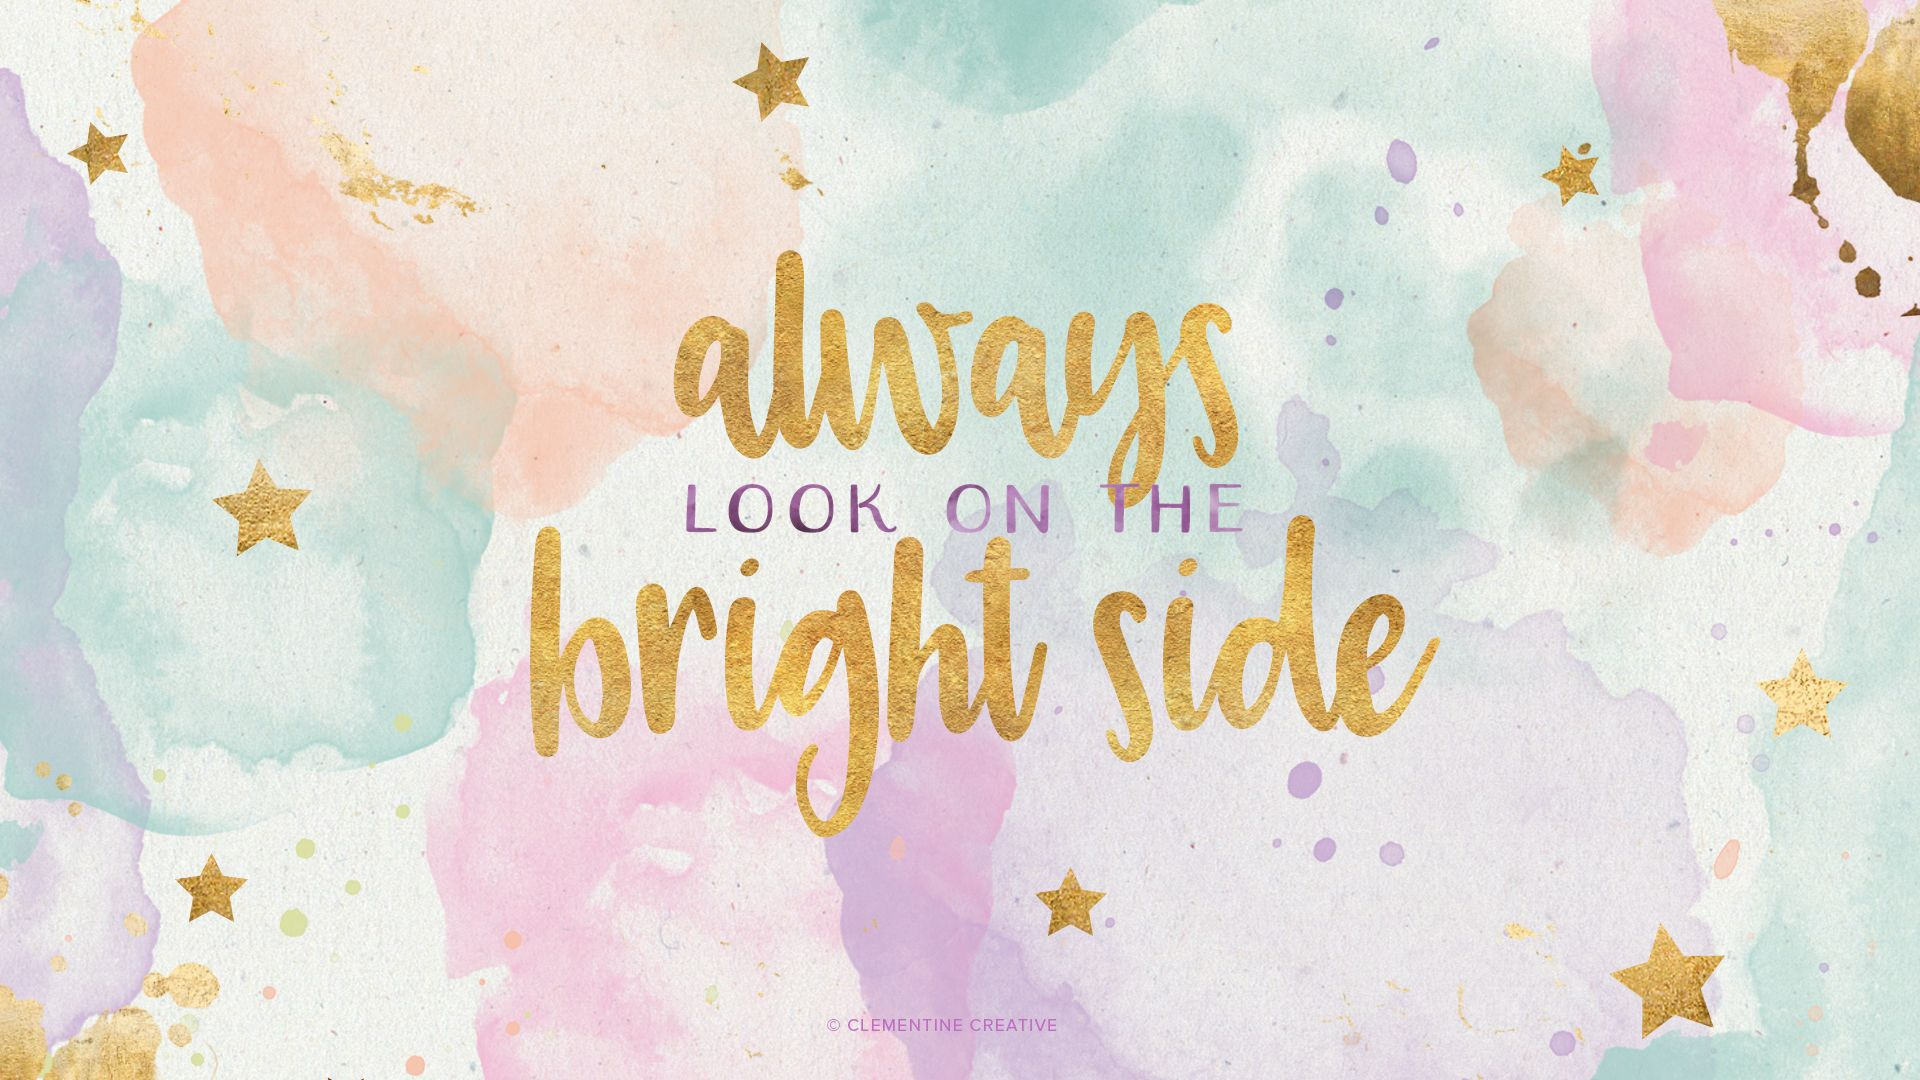 Pinterest Cute Desktop Wallpaper Free Wallpaper Always Look On The Bright Side Wallpaper Quotes Cute Desktop Wallpaper Cute Quotes